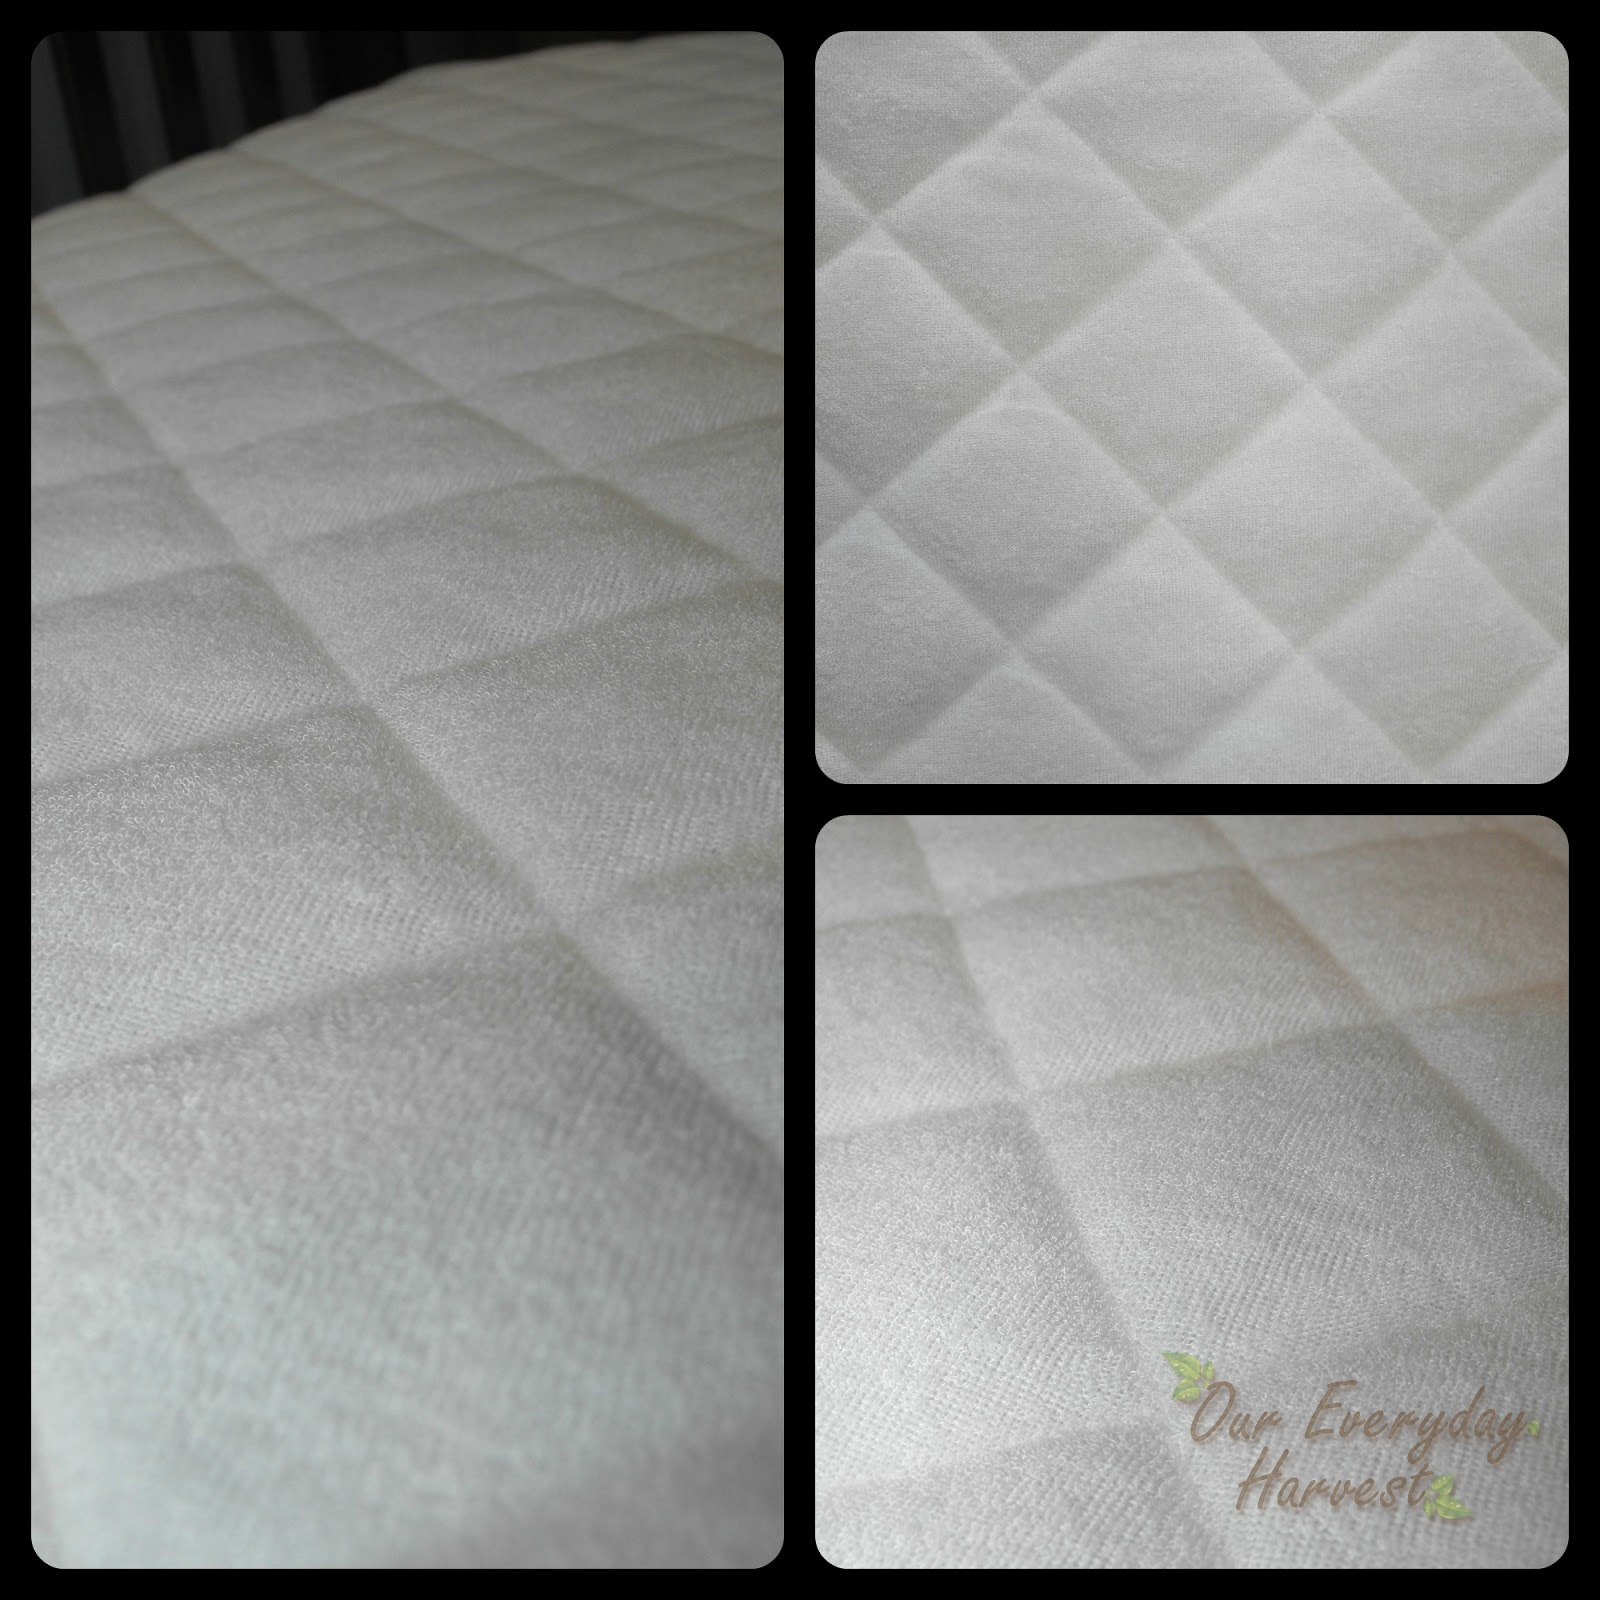 Billowy Quilting That Isn T Overly Thick To Ensure Safe Baby Sleep Standards The Pad Is Ed Accommodate Most Standard Size Crib Mattresses